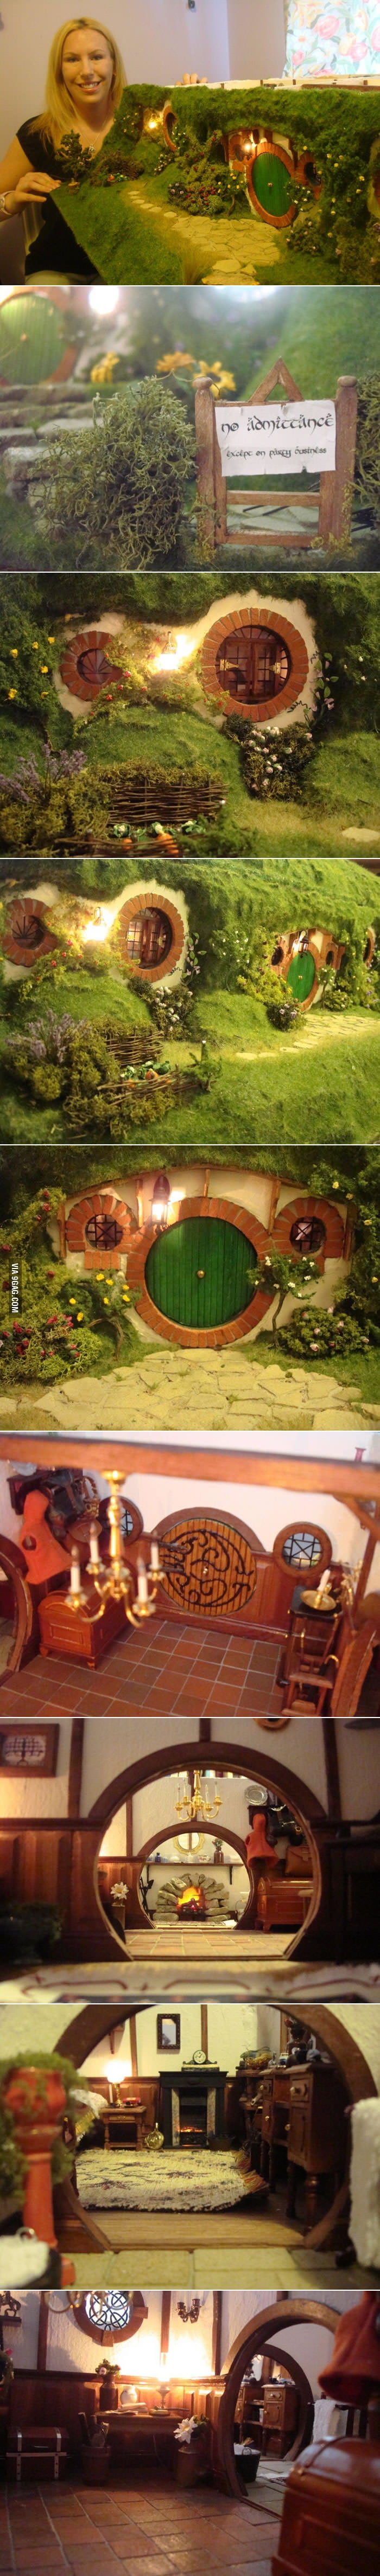 Awesome Hobbit Dollhouse!